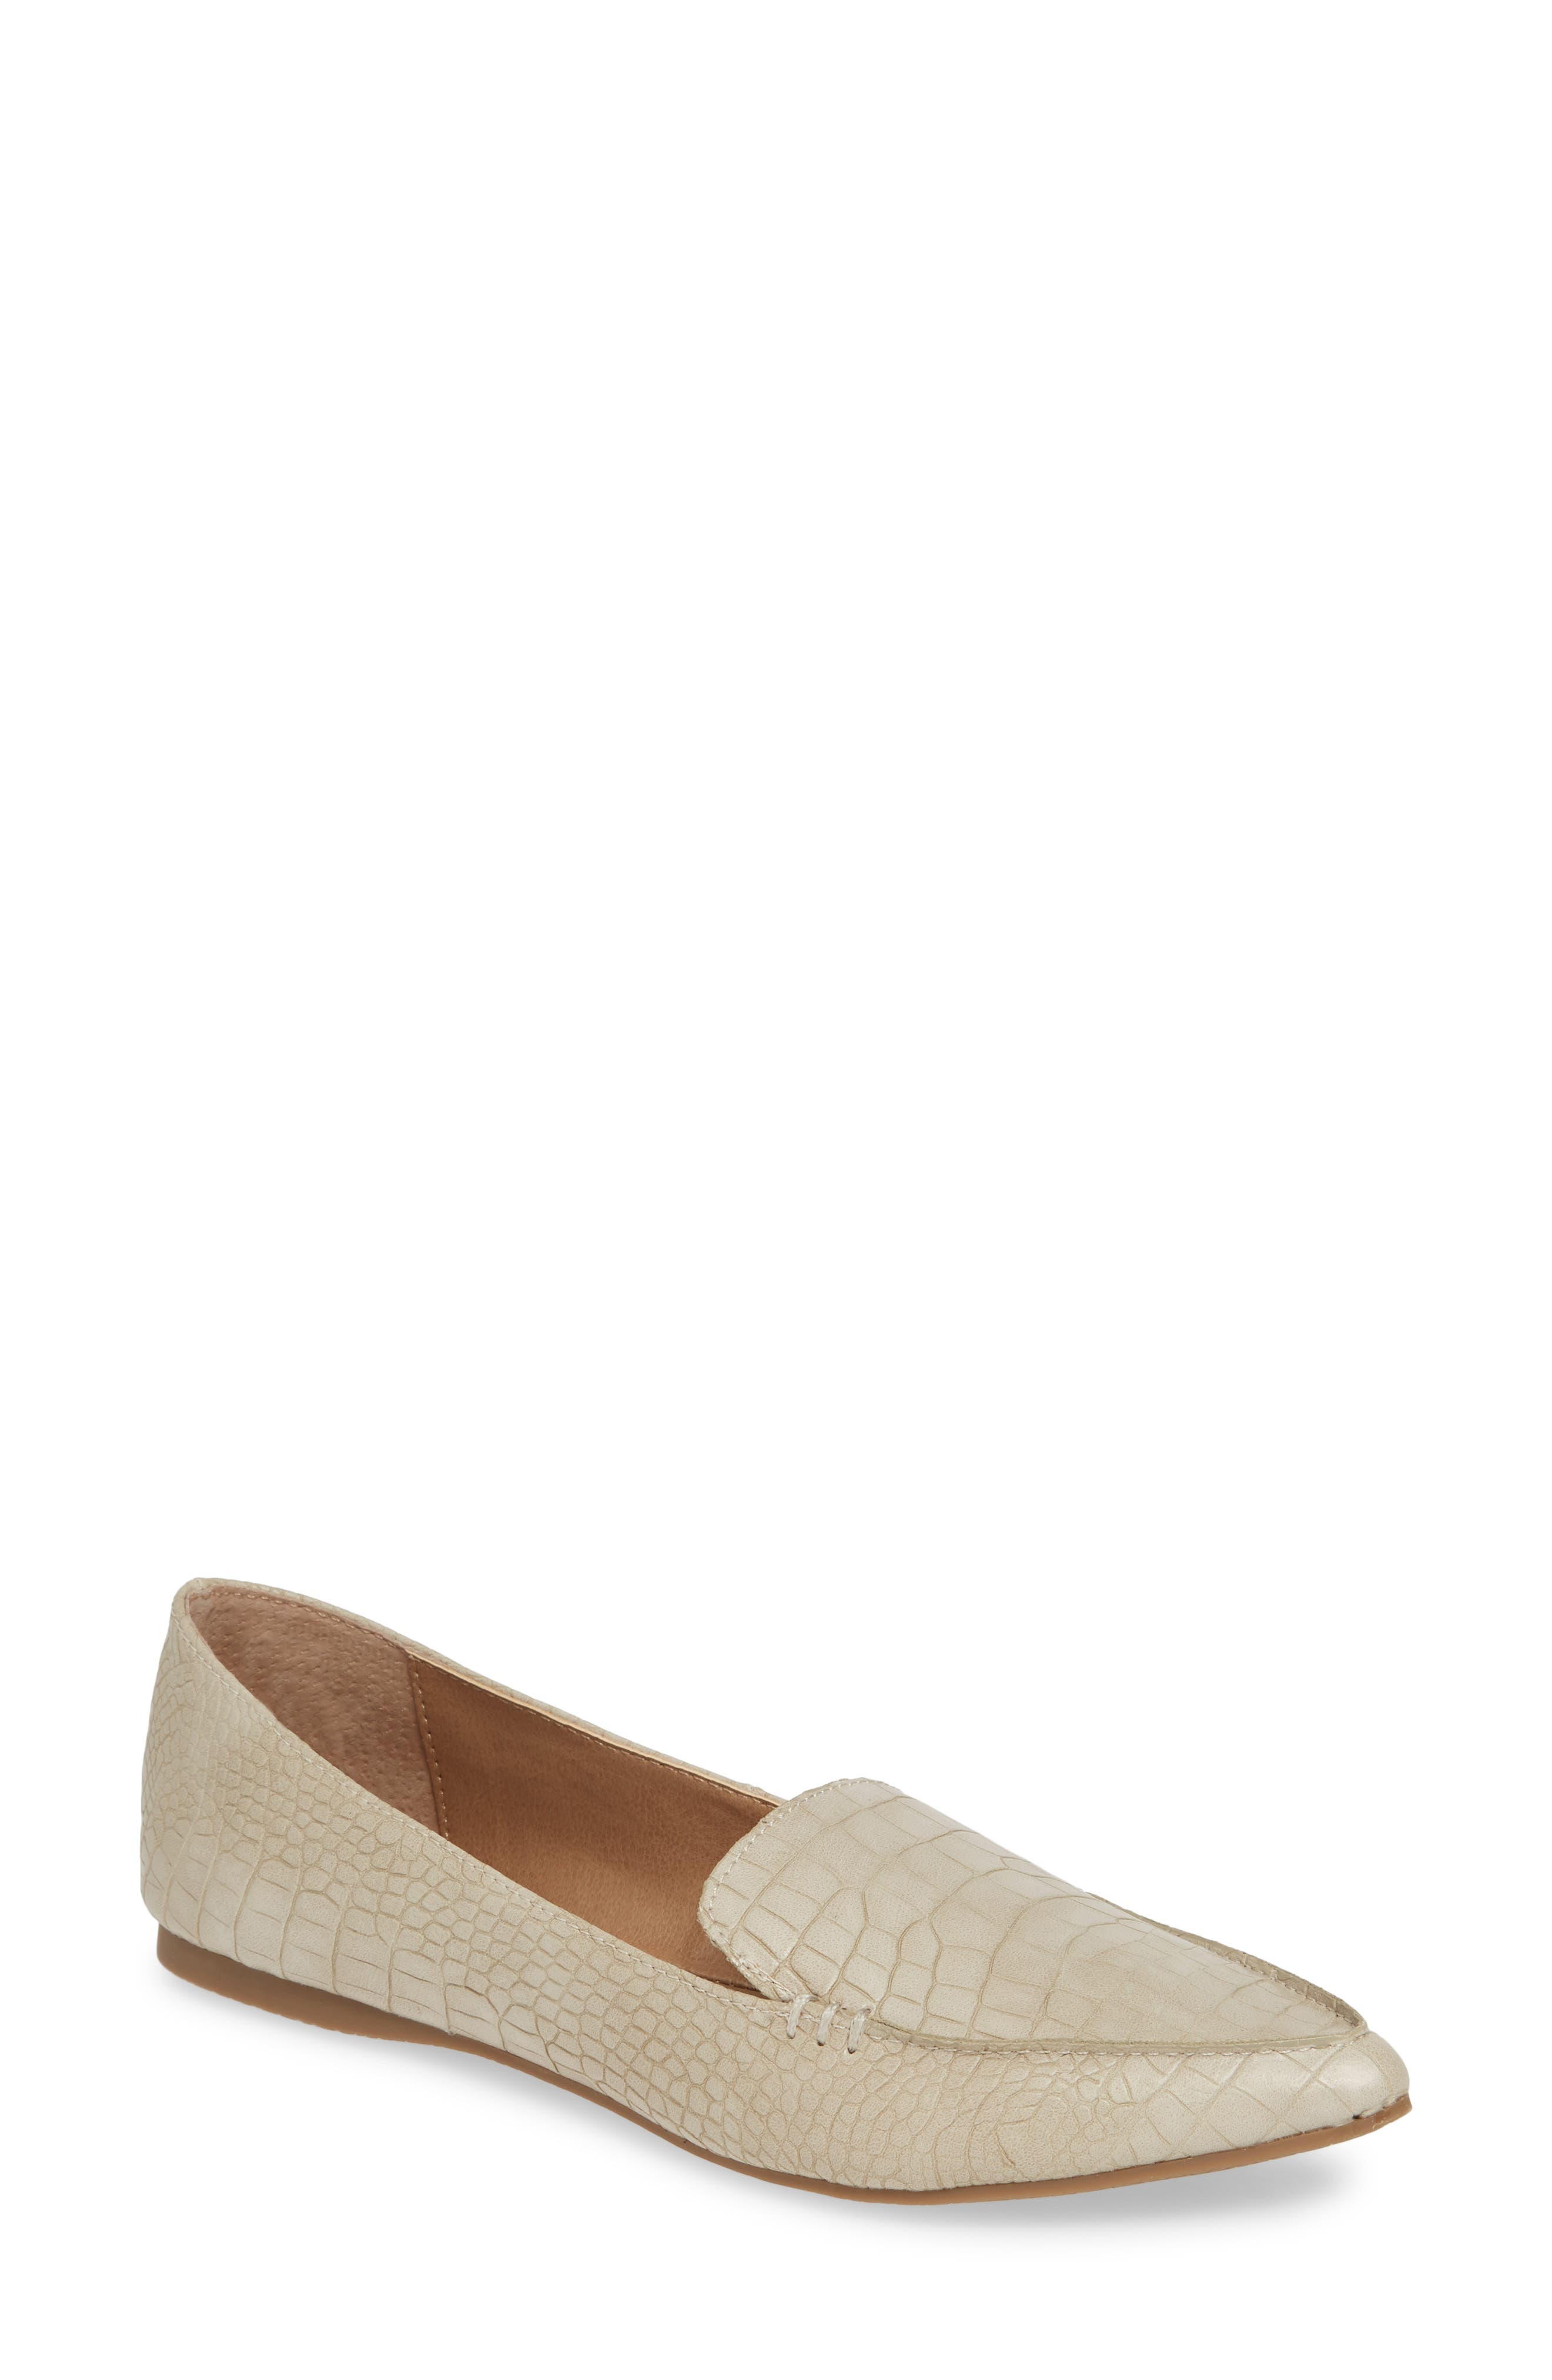 STEVE MADDEN,                             Feather Loafer Flat,                             Main thumbnail 1, color,                             TAUPE PRINT